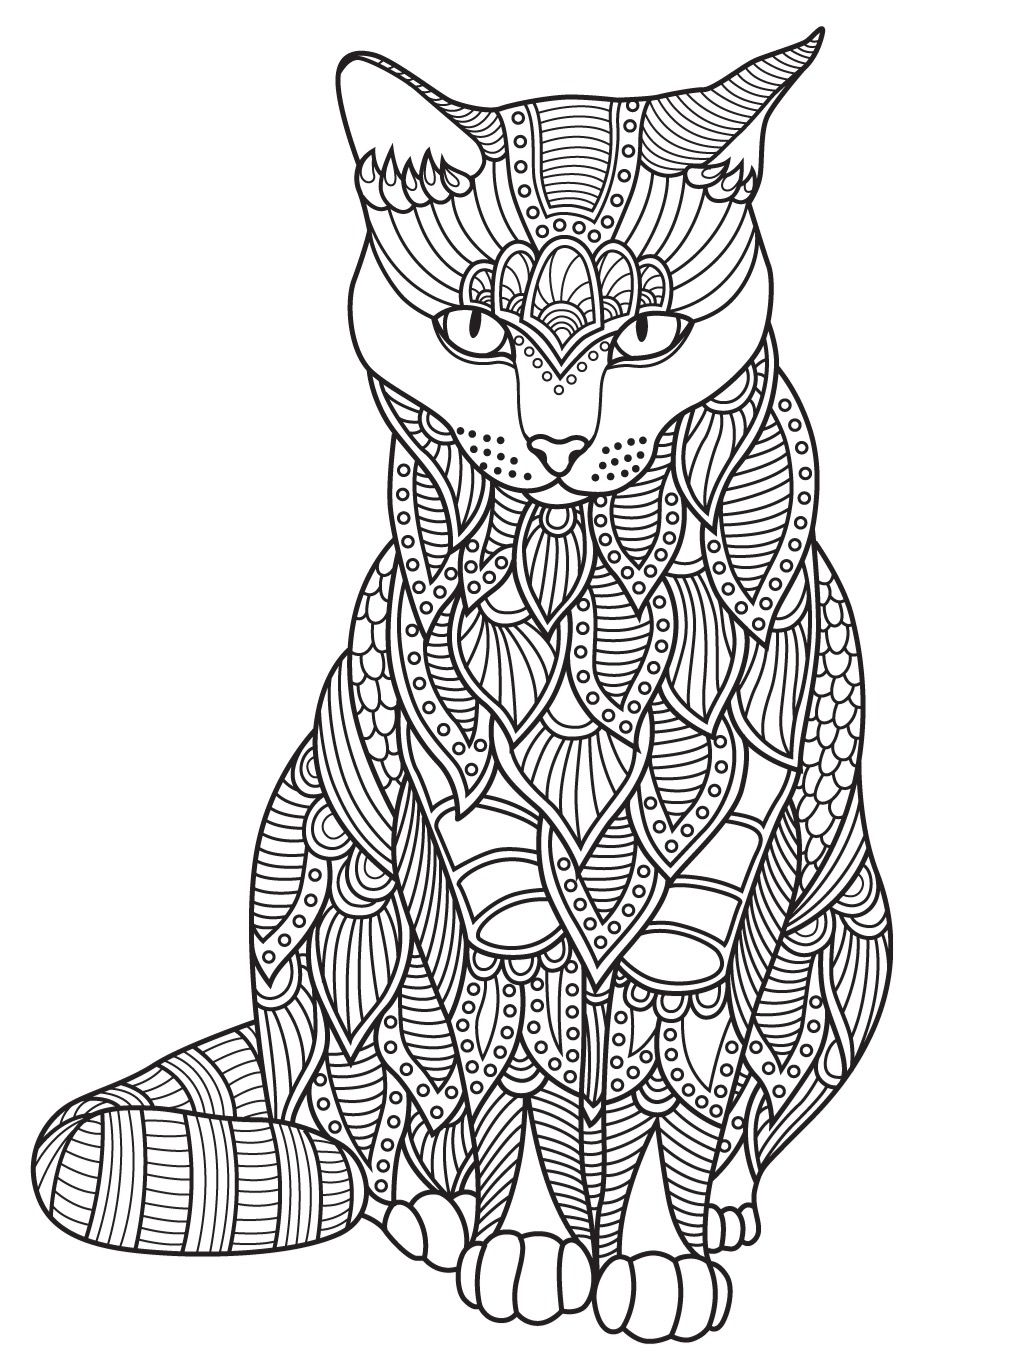 Cats To Color Colorish Free Coloring App For Adults By